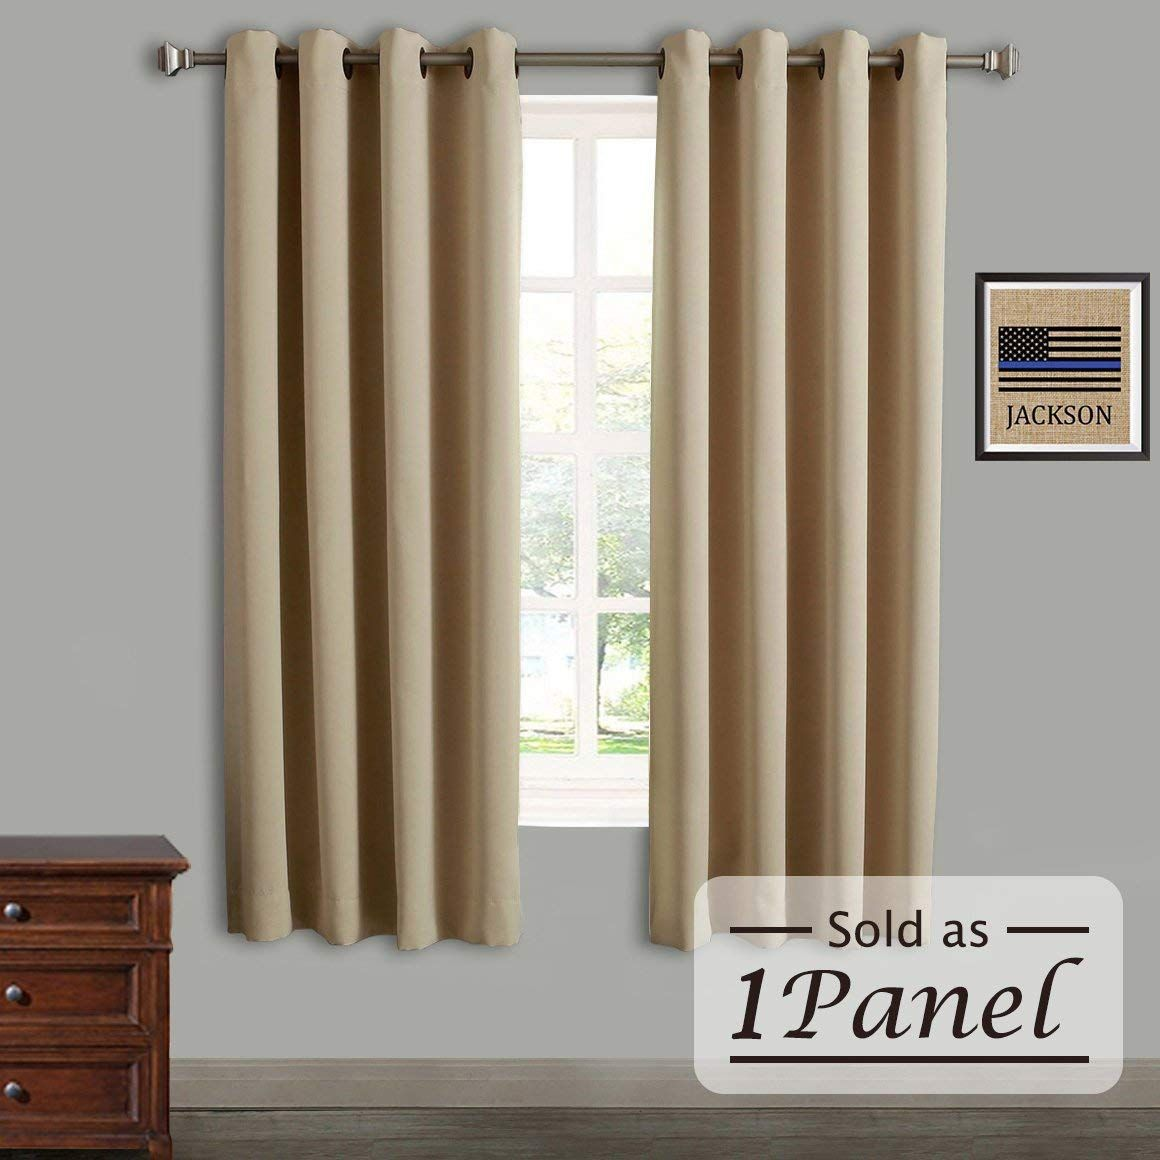 Rose Home Fashion Rhf Blackout Thermal Insulated Curtain Antique Bronze Gr Insulated Curtains Insulated Blackout Curtains Thermal Insulated Blackout Curtains